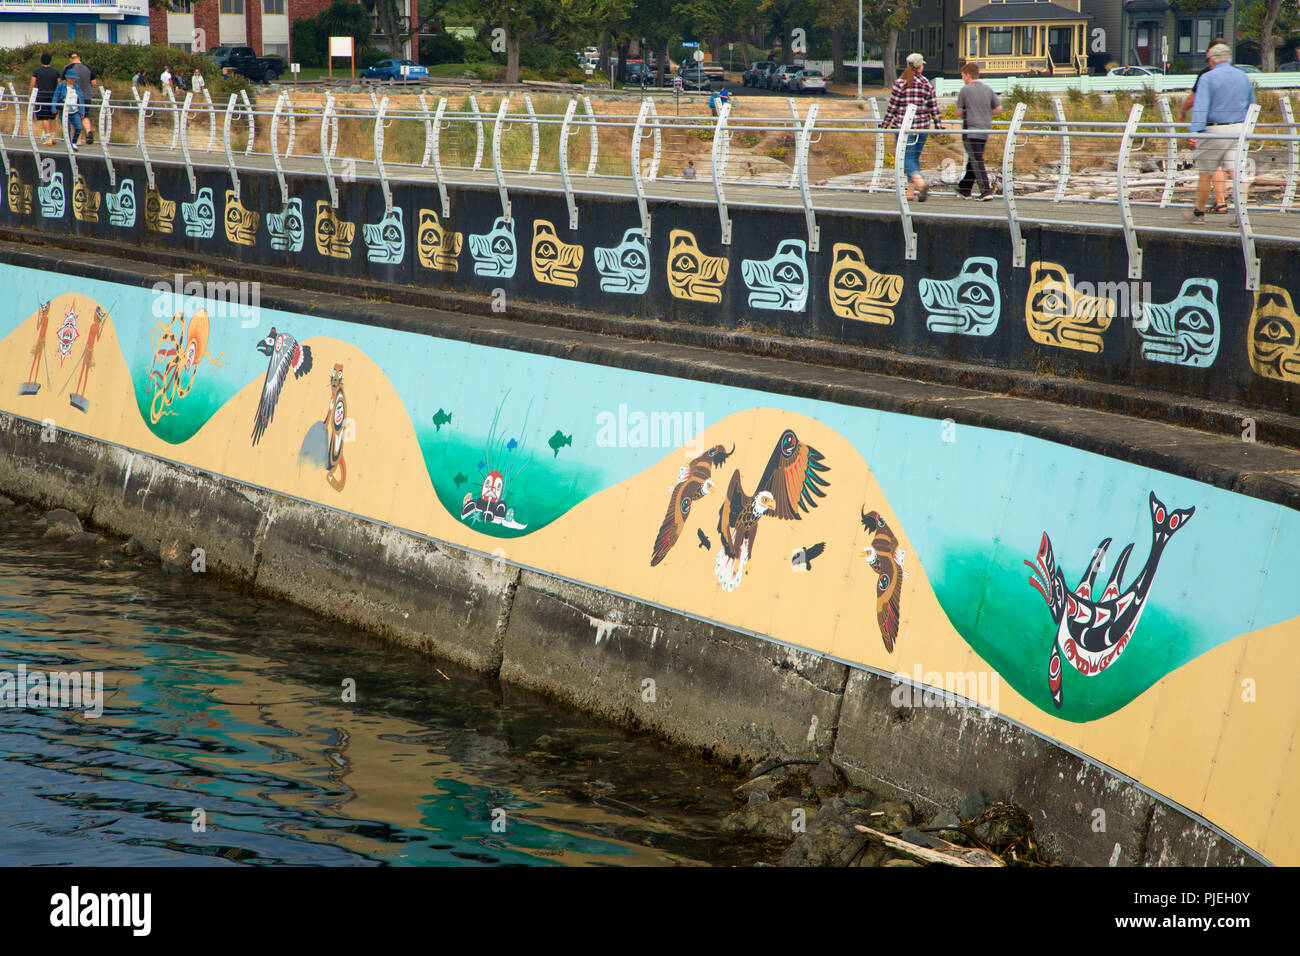 The Unity Wall mural on Ogden Point Breakwater, Victoria, British